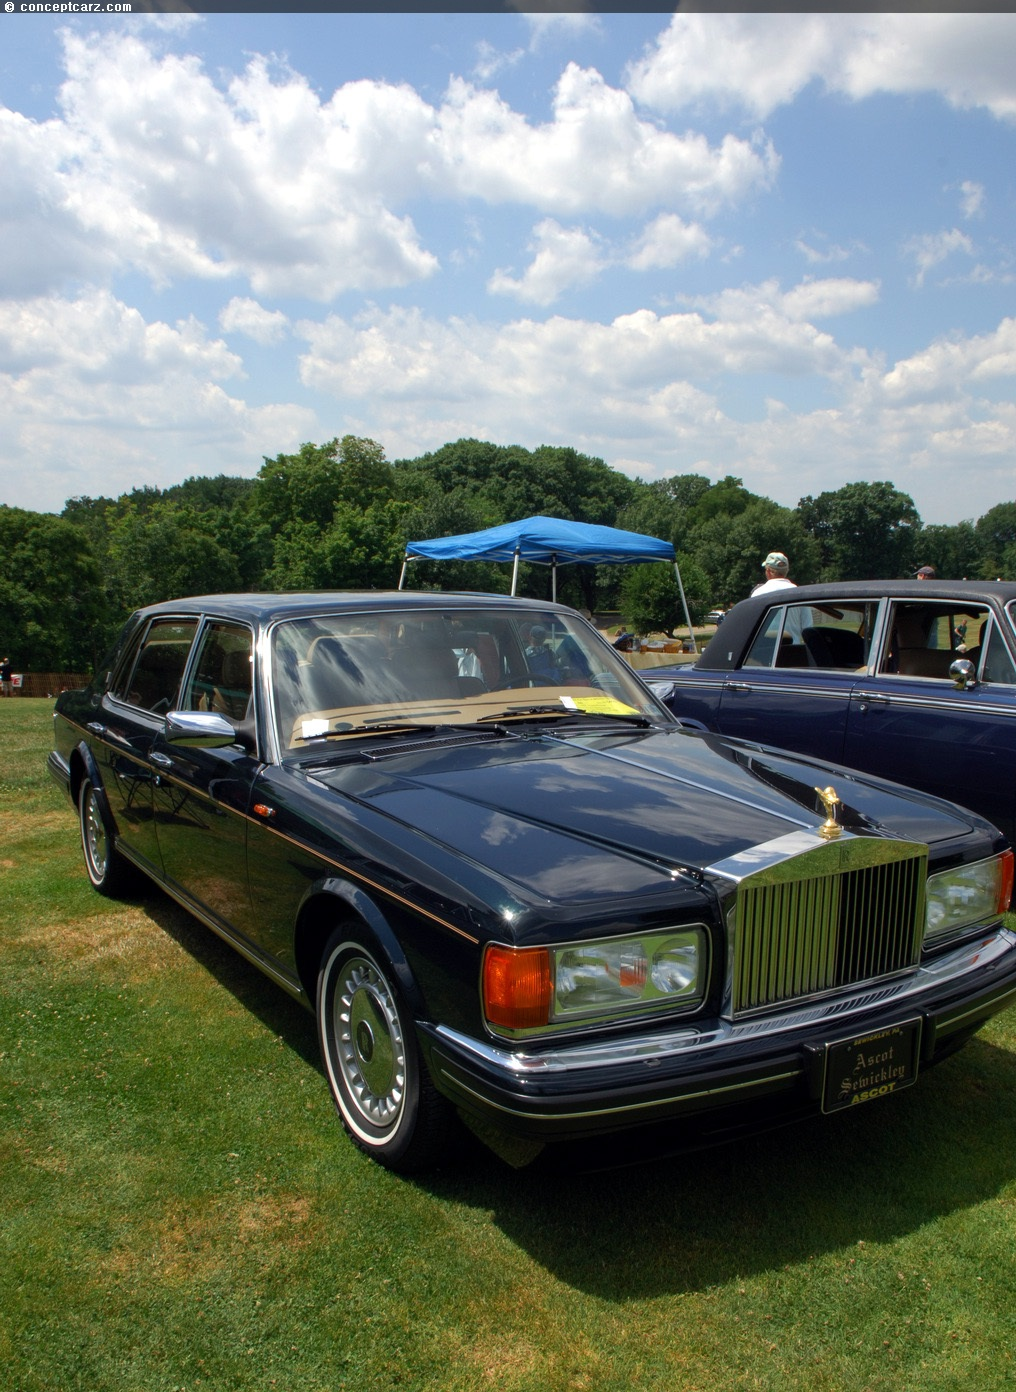 Note the images shown are representations of the 1997 rolls royce silver spur